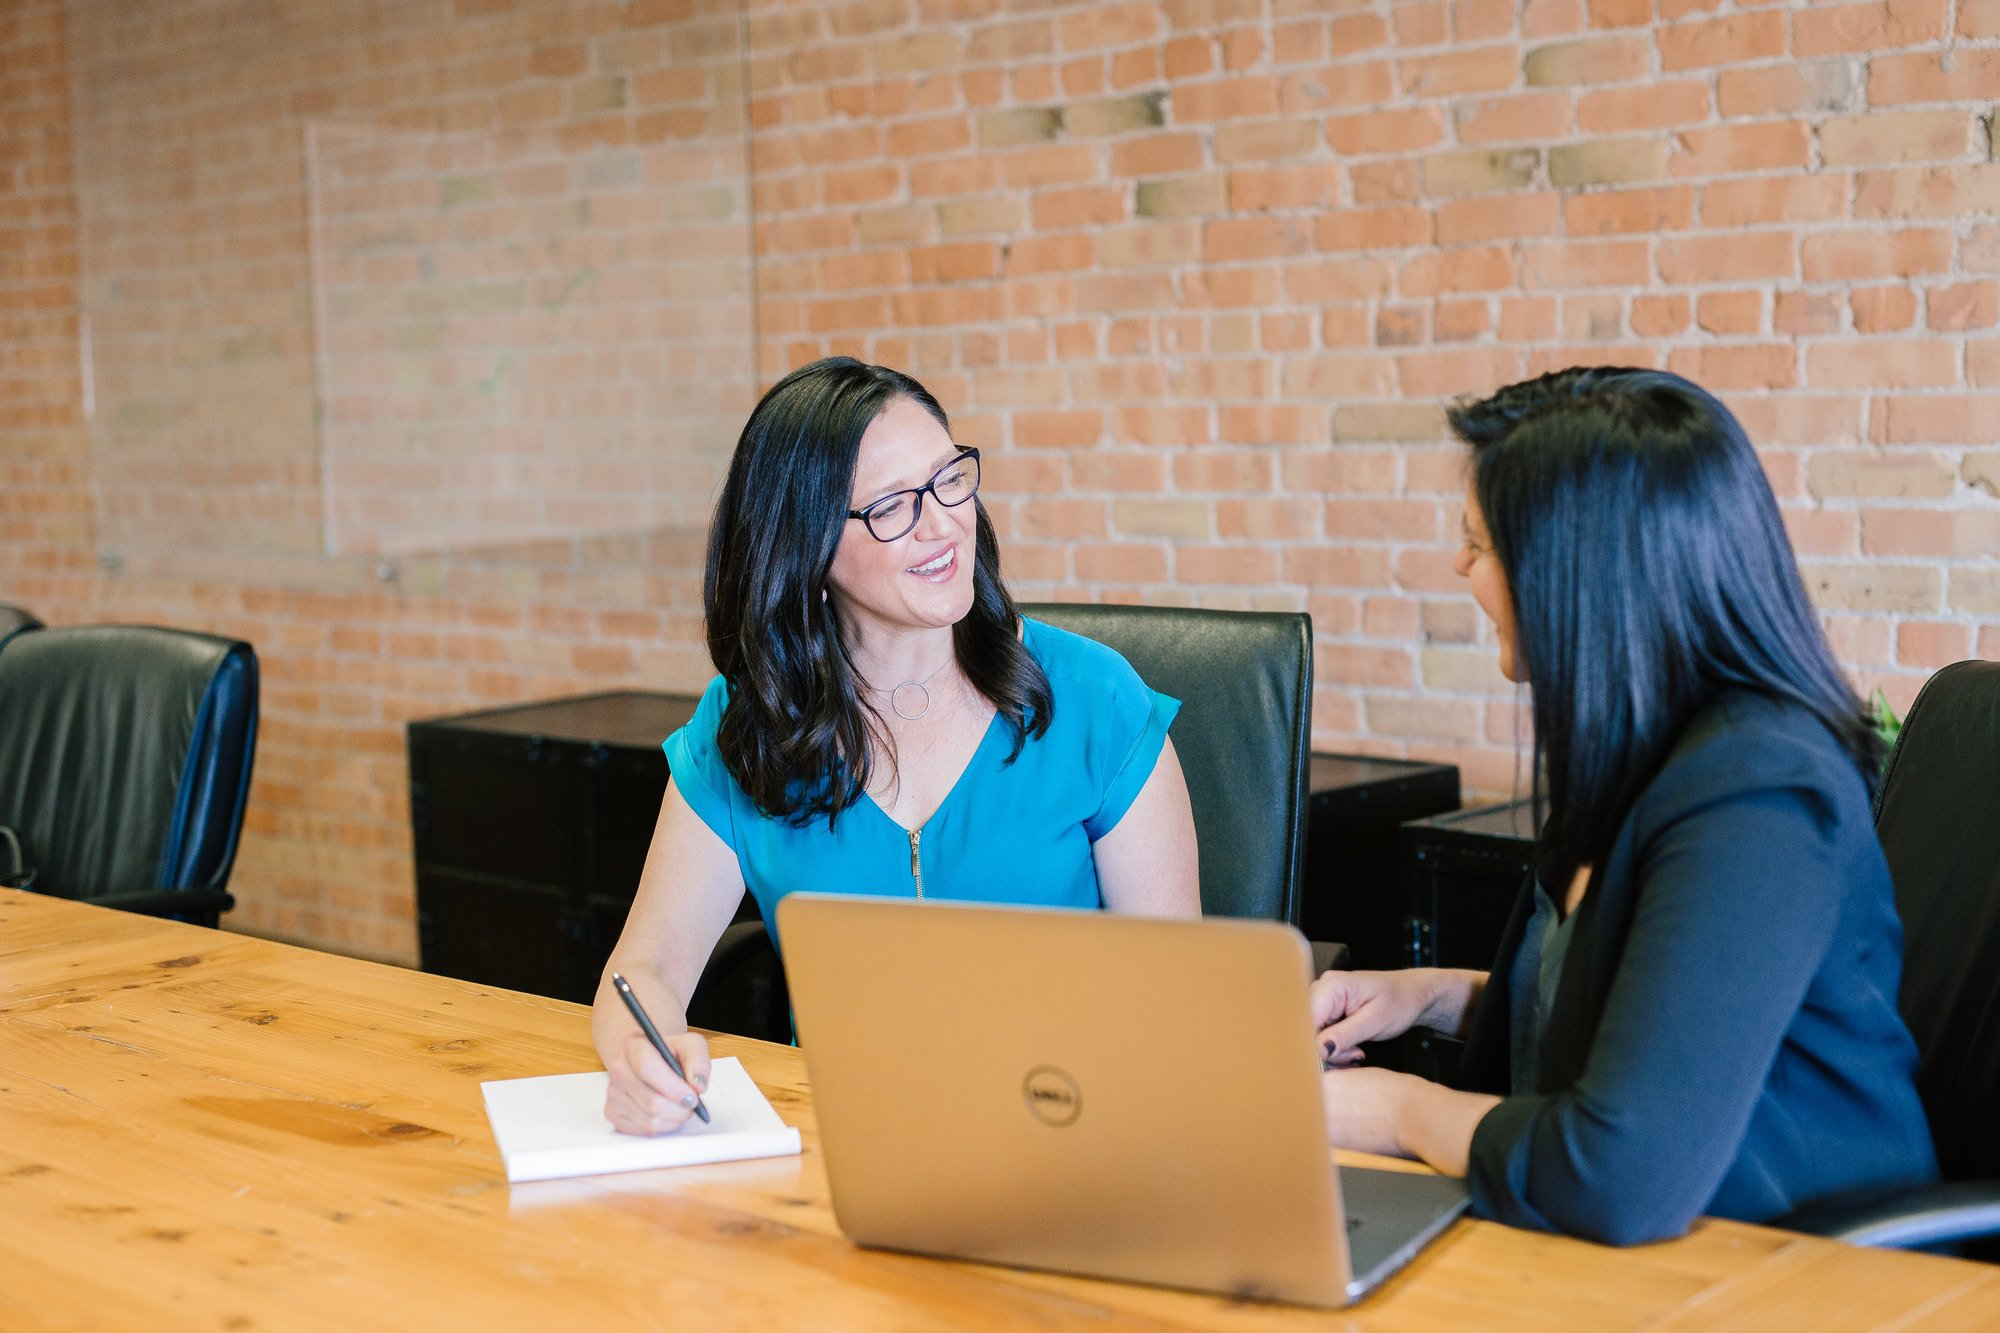 Digital Marketing Consultant - a woman consult to an expert